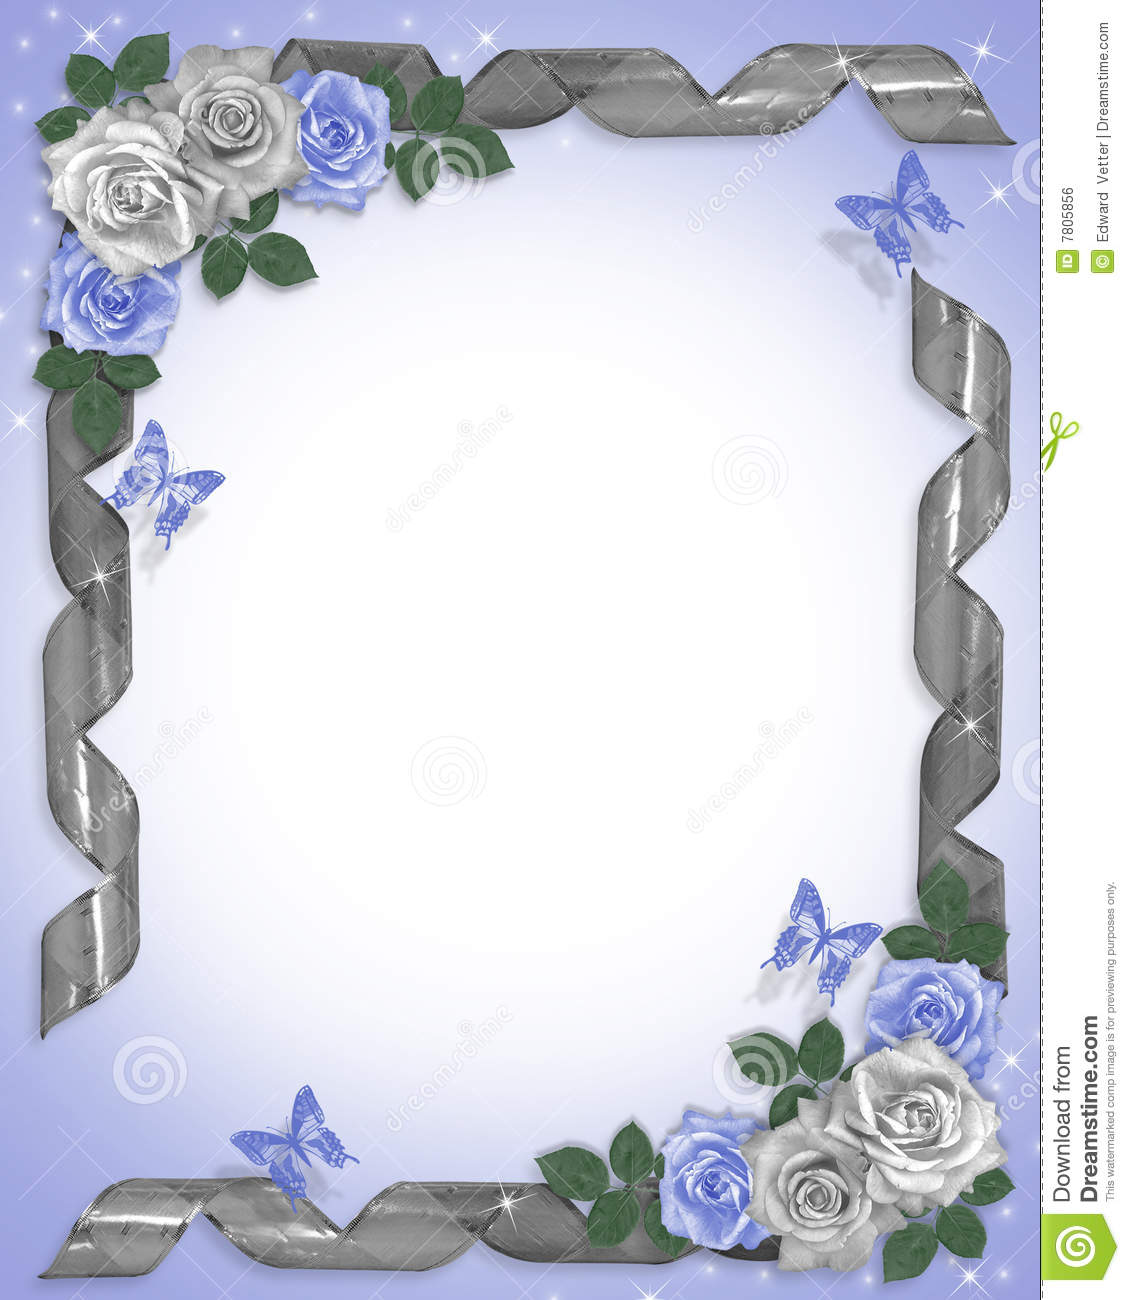 Wedding Border Blue Roses And Ribbons Royalty Free Stock